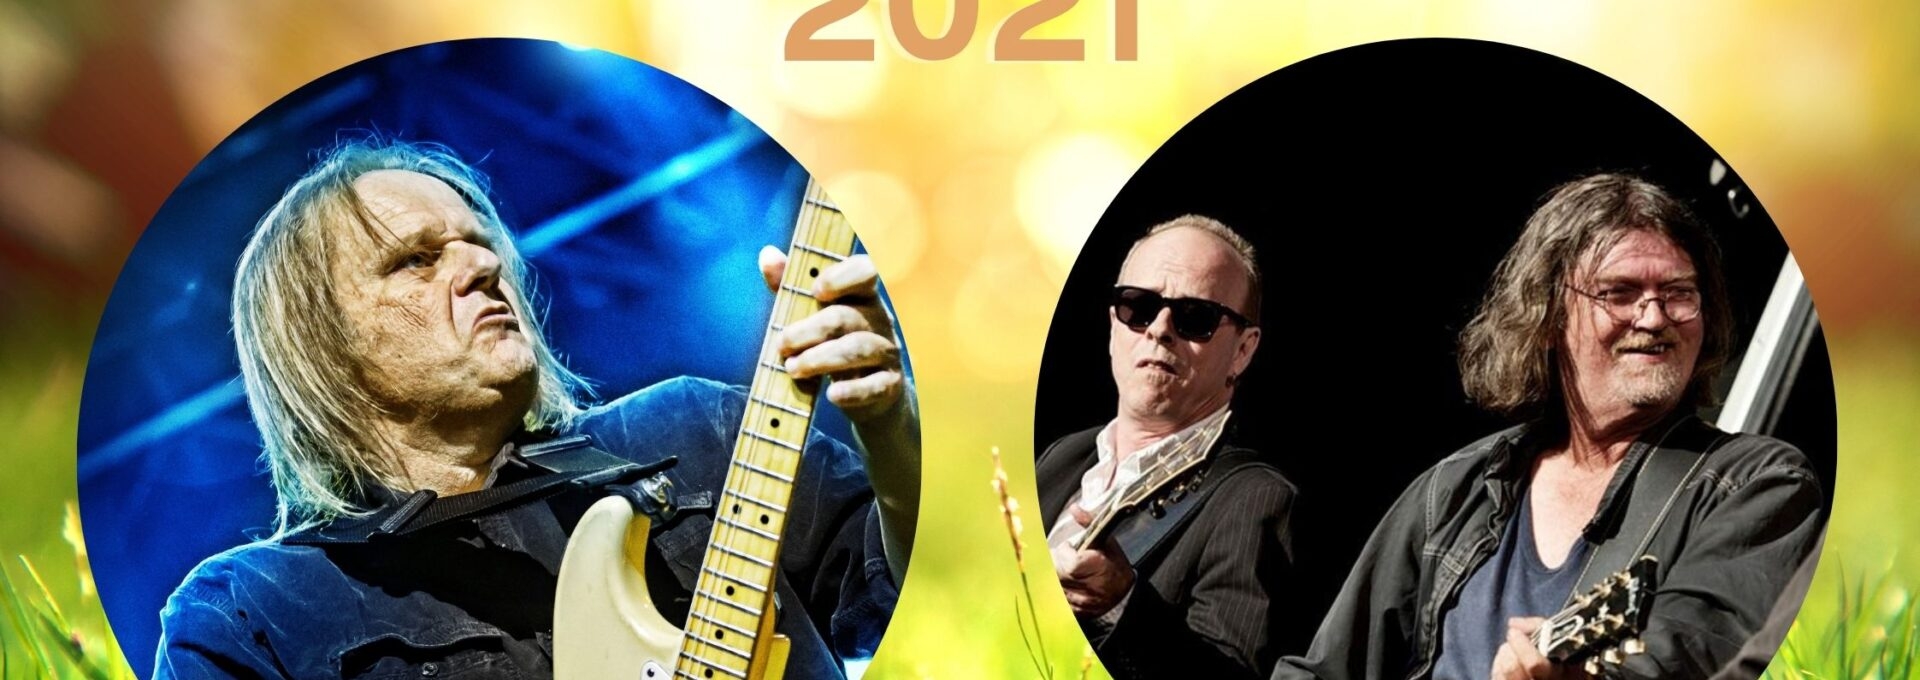 Walter Trout Band (US) & Johnny Madsen